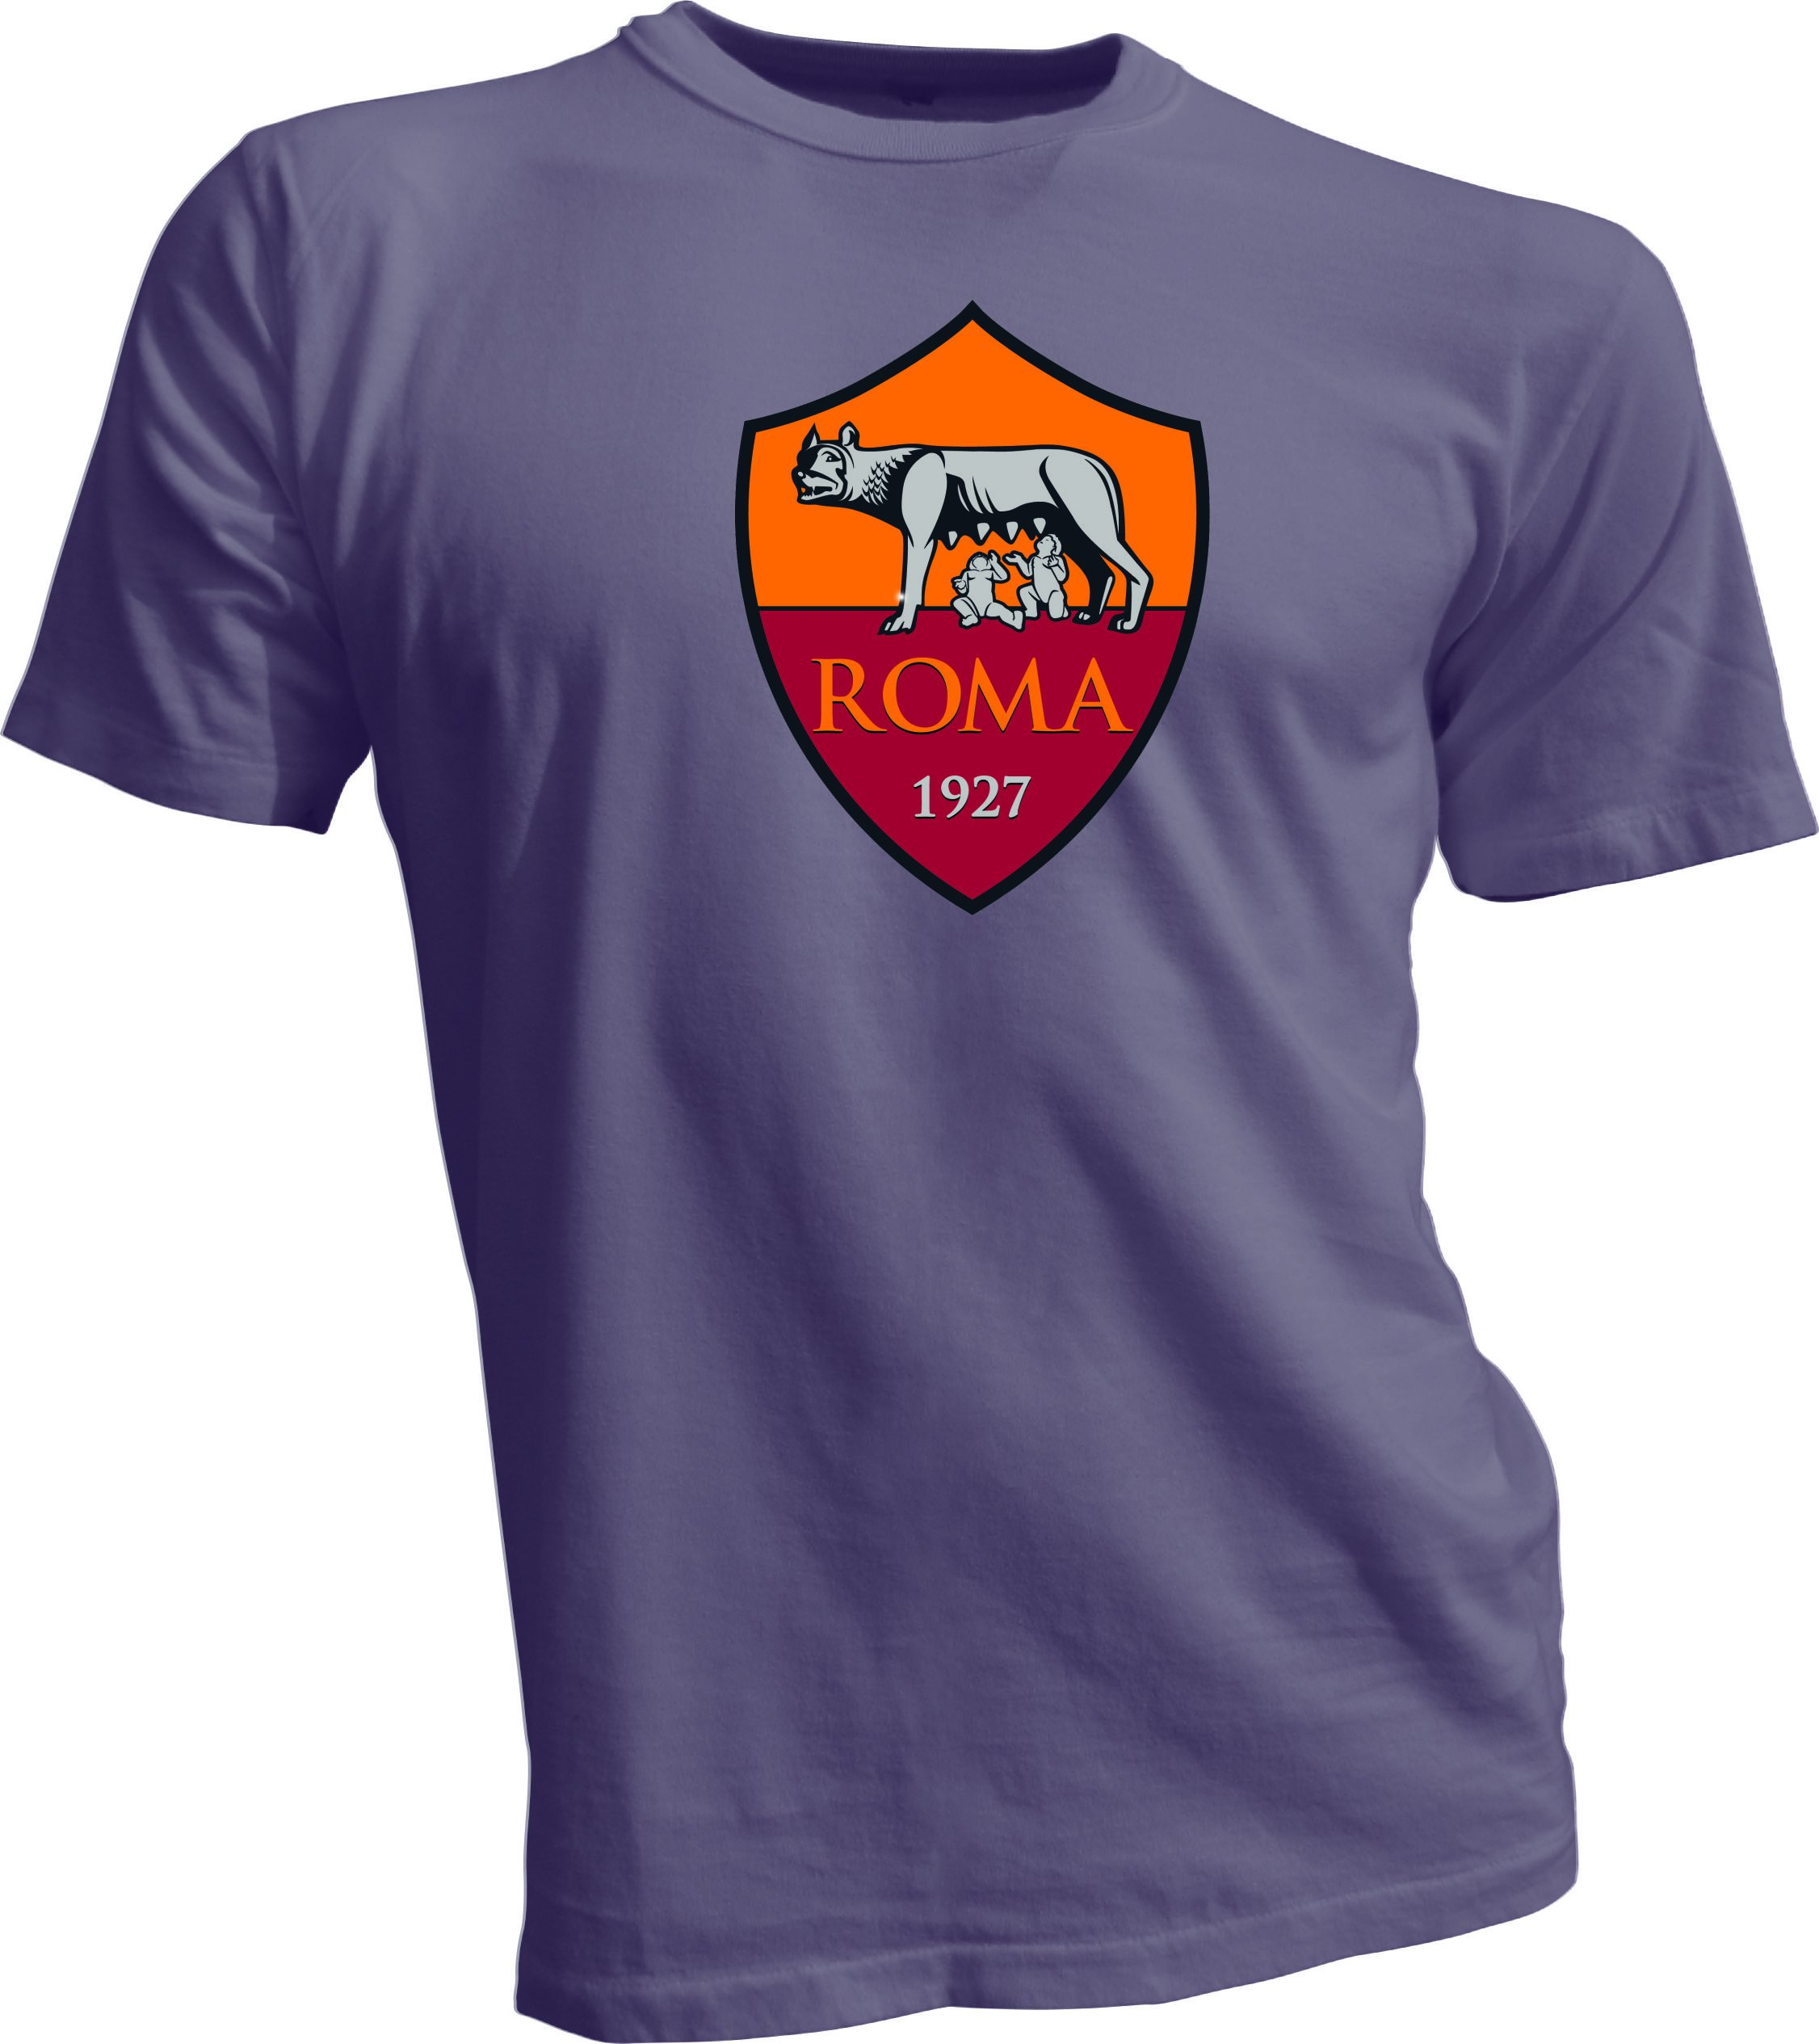 A.S. Roma Giallorossi Italy Serie A Football Soccer T-Shirt Men's Gray Large